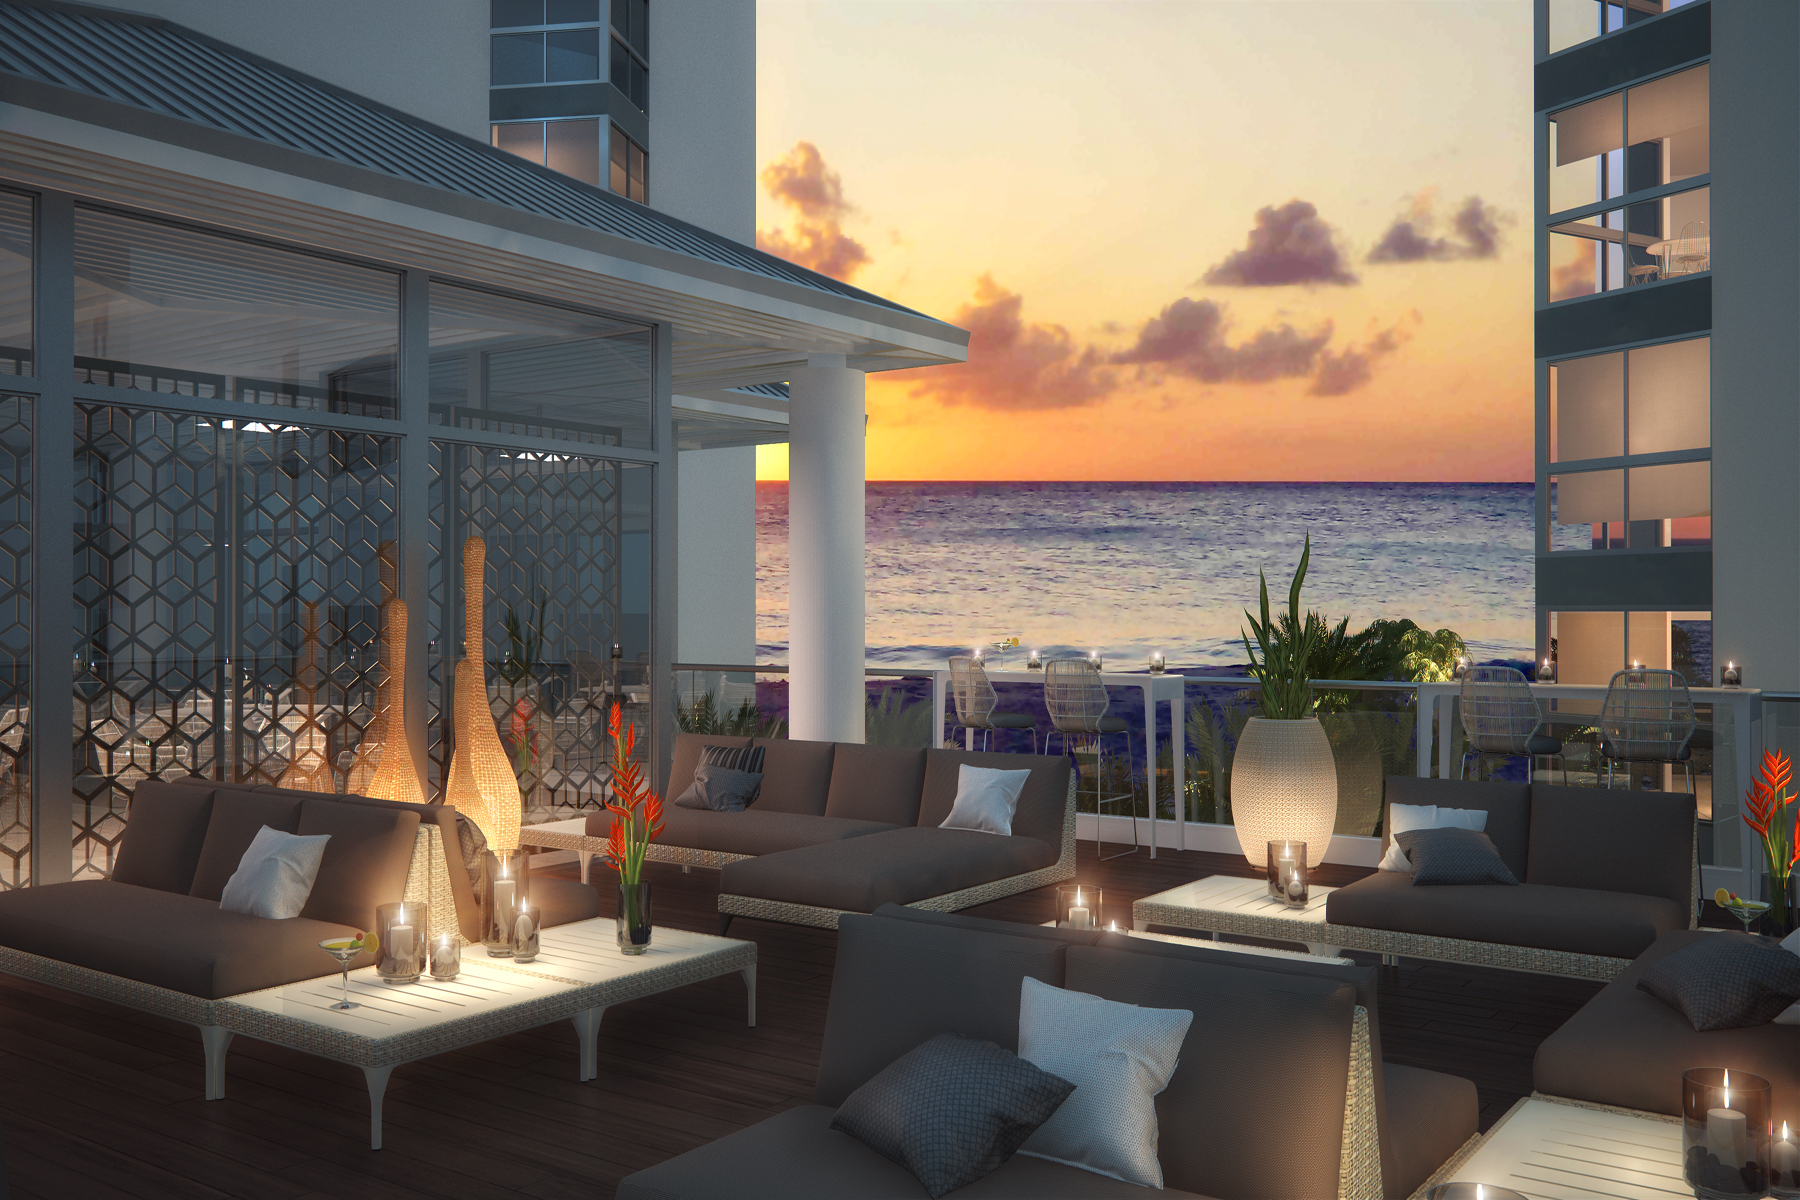 Apartment for Sale at Azure Residences 2 bedroom Eagle Beach, Aruba